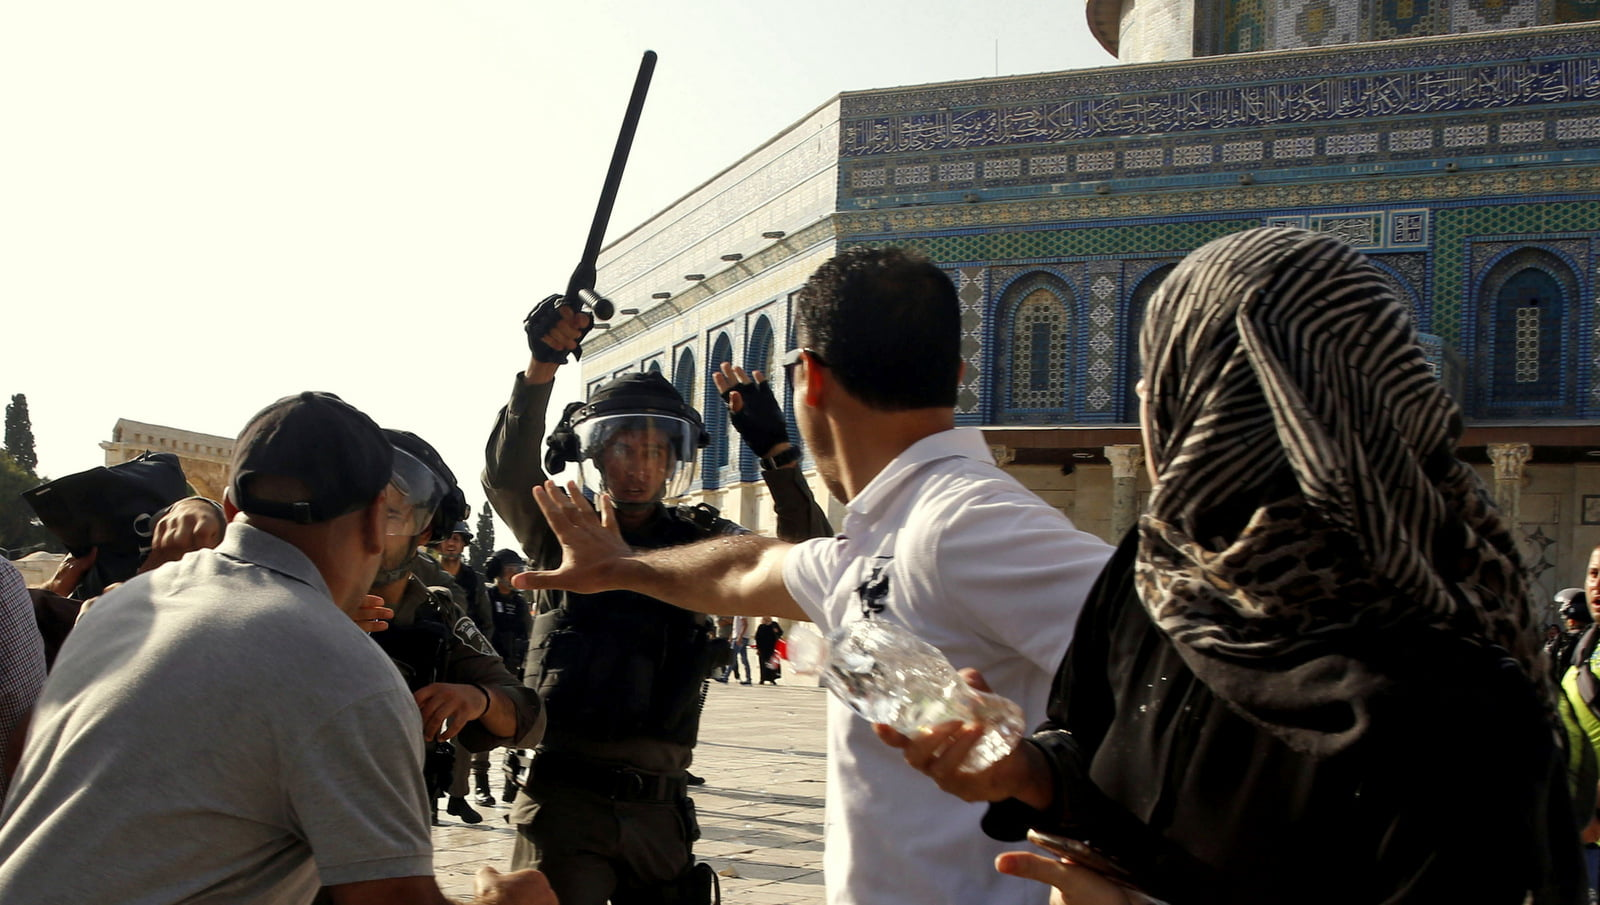 An Israeli police officer raises his baton on Palestinians worshipers near the Al Aqsa Mosque in Jerusalem's Old City, July 27, 2017. Mahmoud Illean | AP